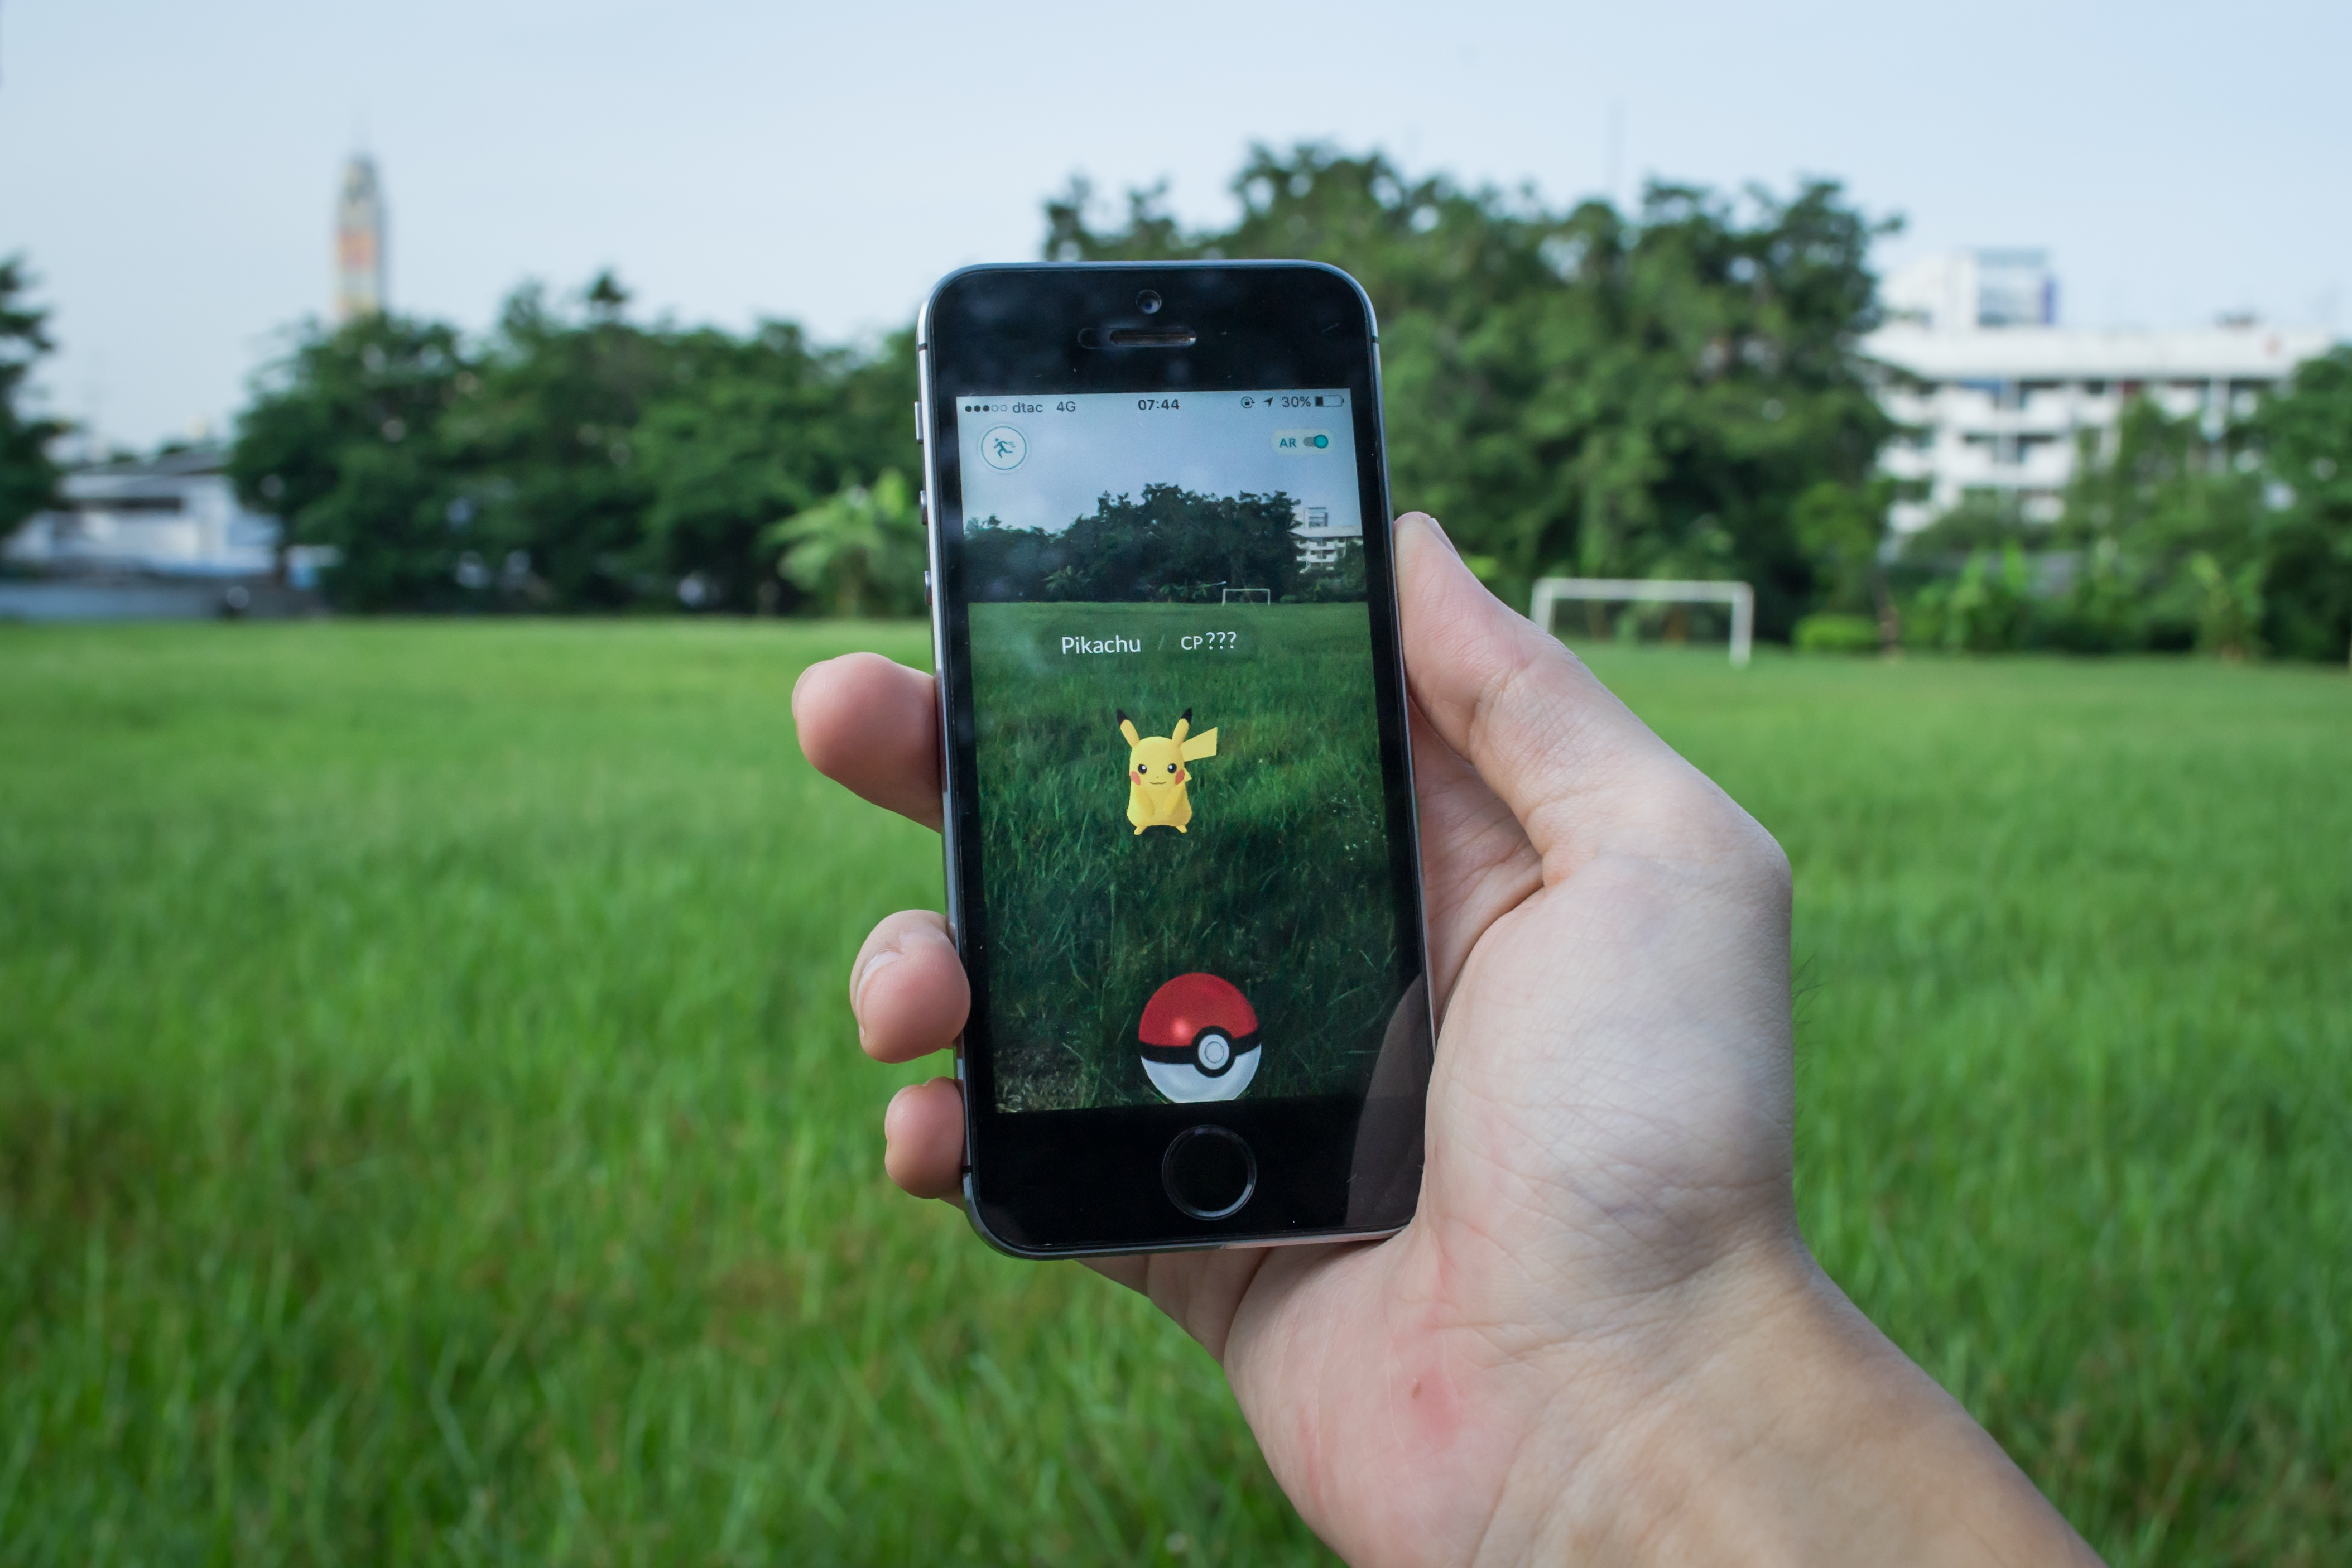 Millions head out onto the streets to play Pokémon Go!